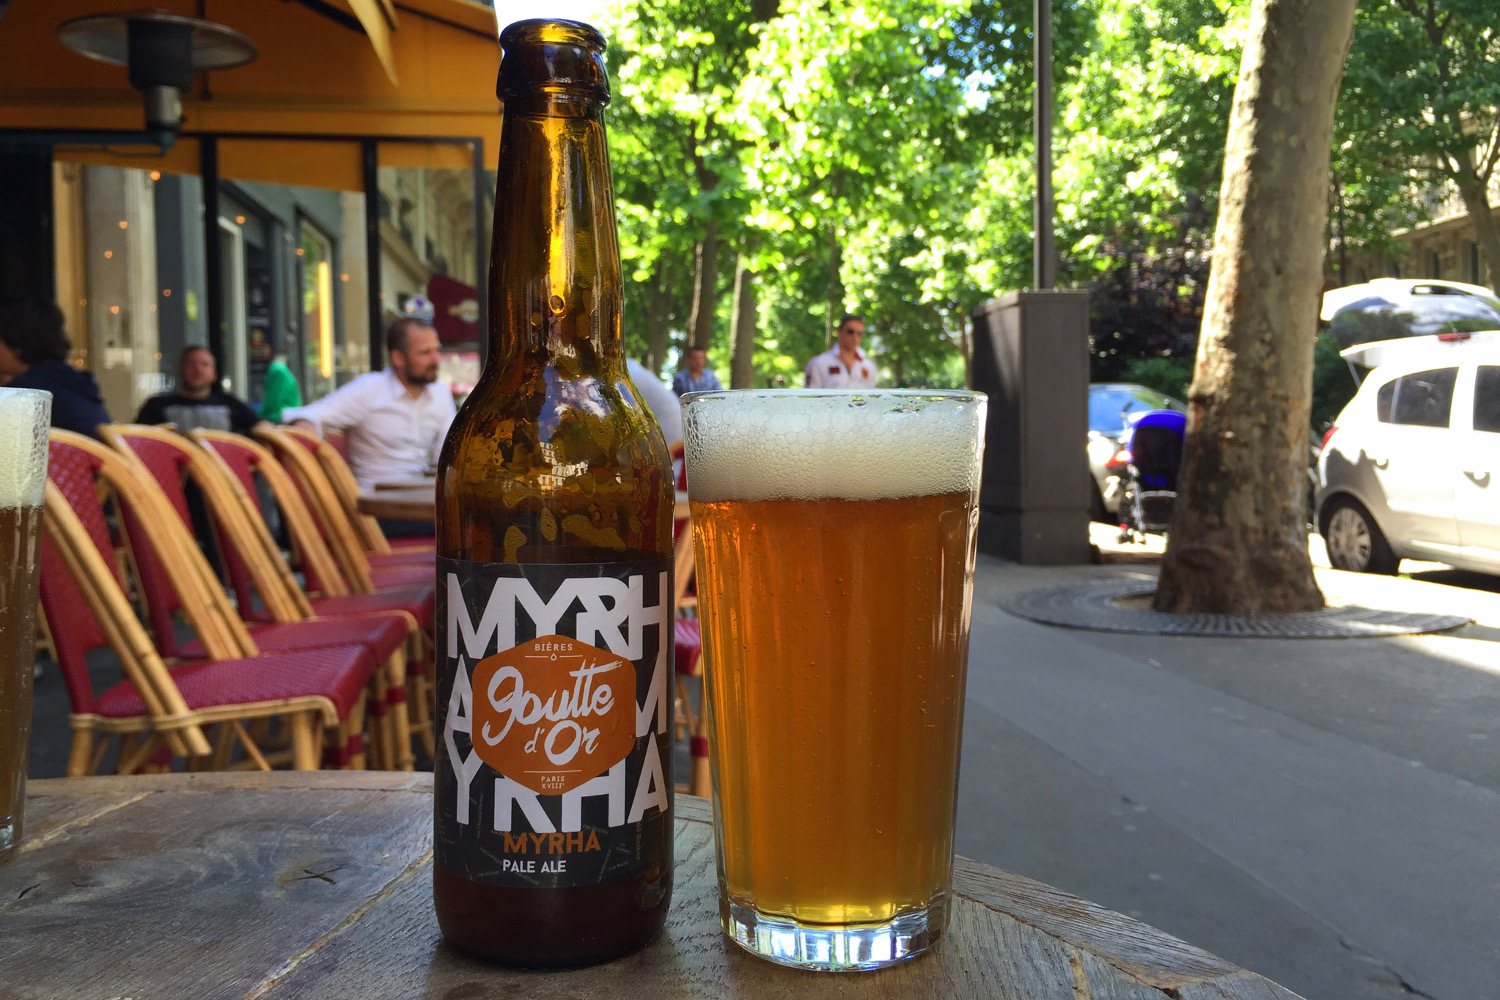 Paris brewery La Goutte d'Or's Myrha pale ale, hoppy goodness for a sunny terrace. Image by Megan Eaves / Lonely Planet